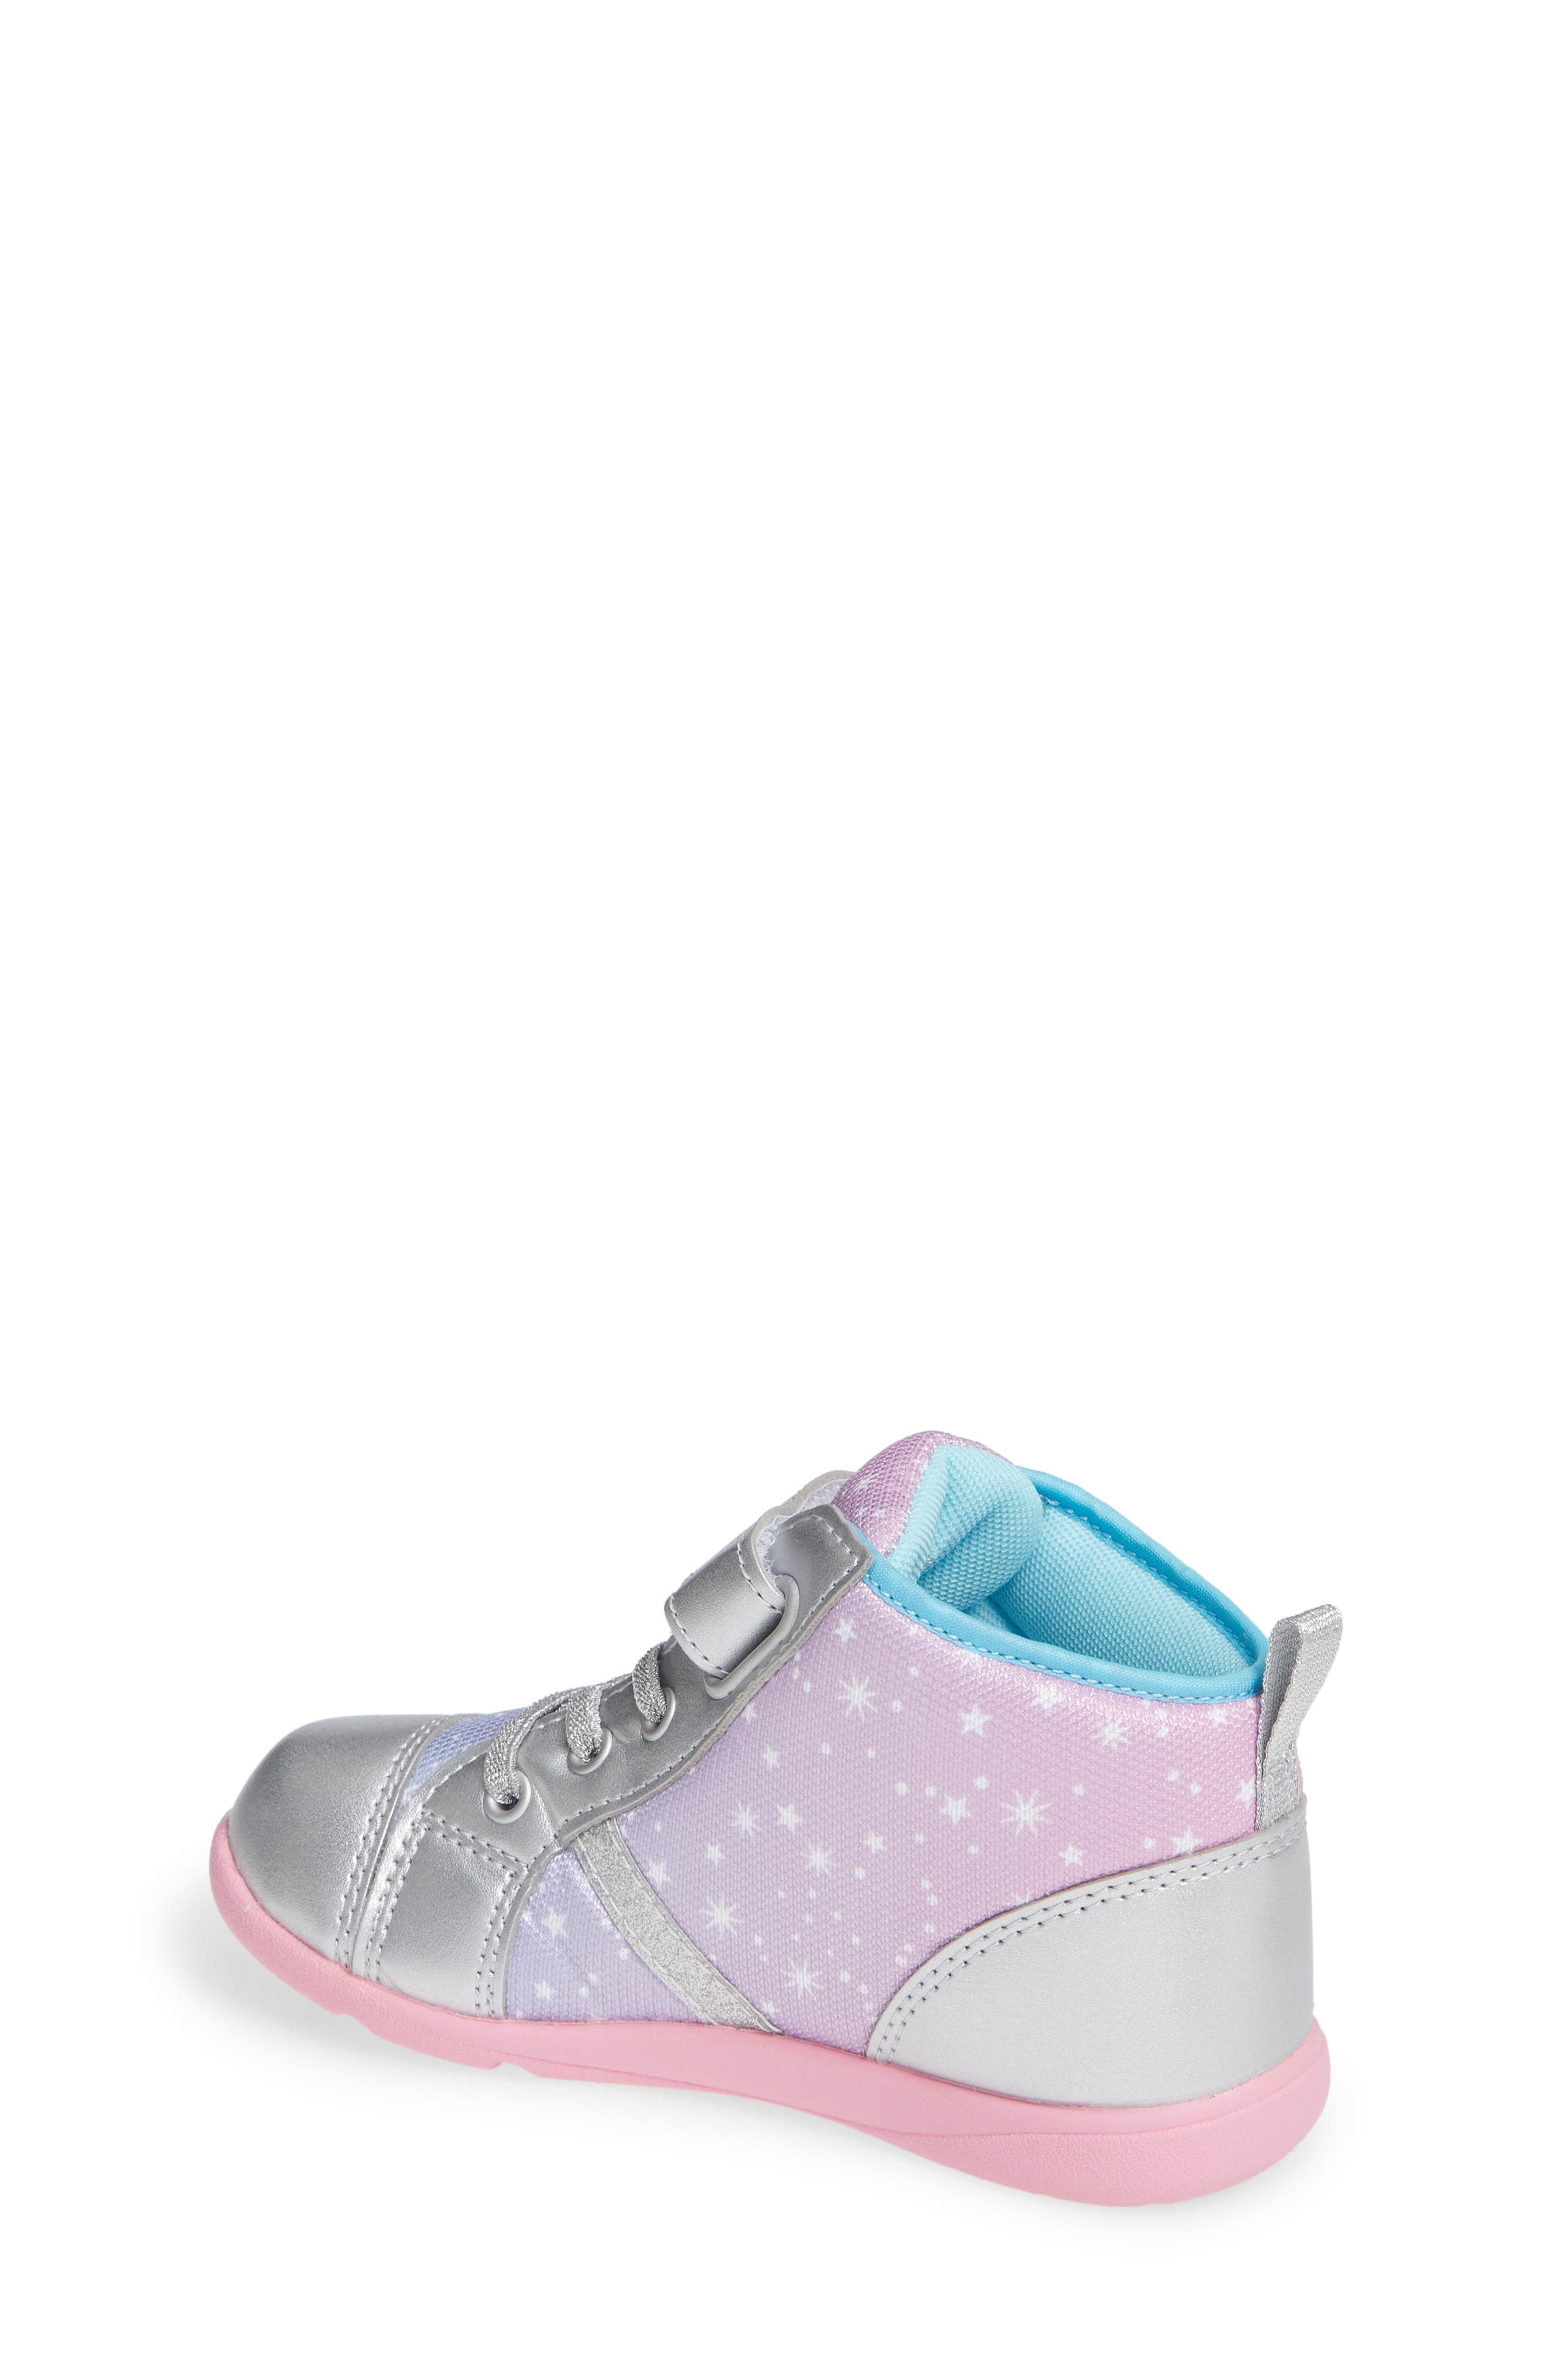 Star Washable Sneaker,                             Alternate thumbnail 2, color,                             SILVER/ PINK